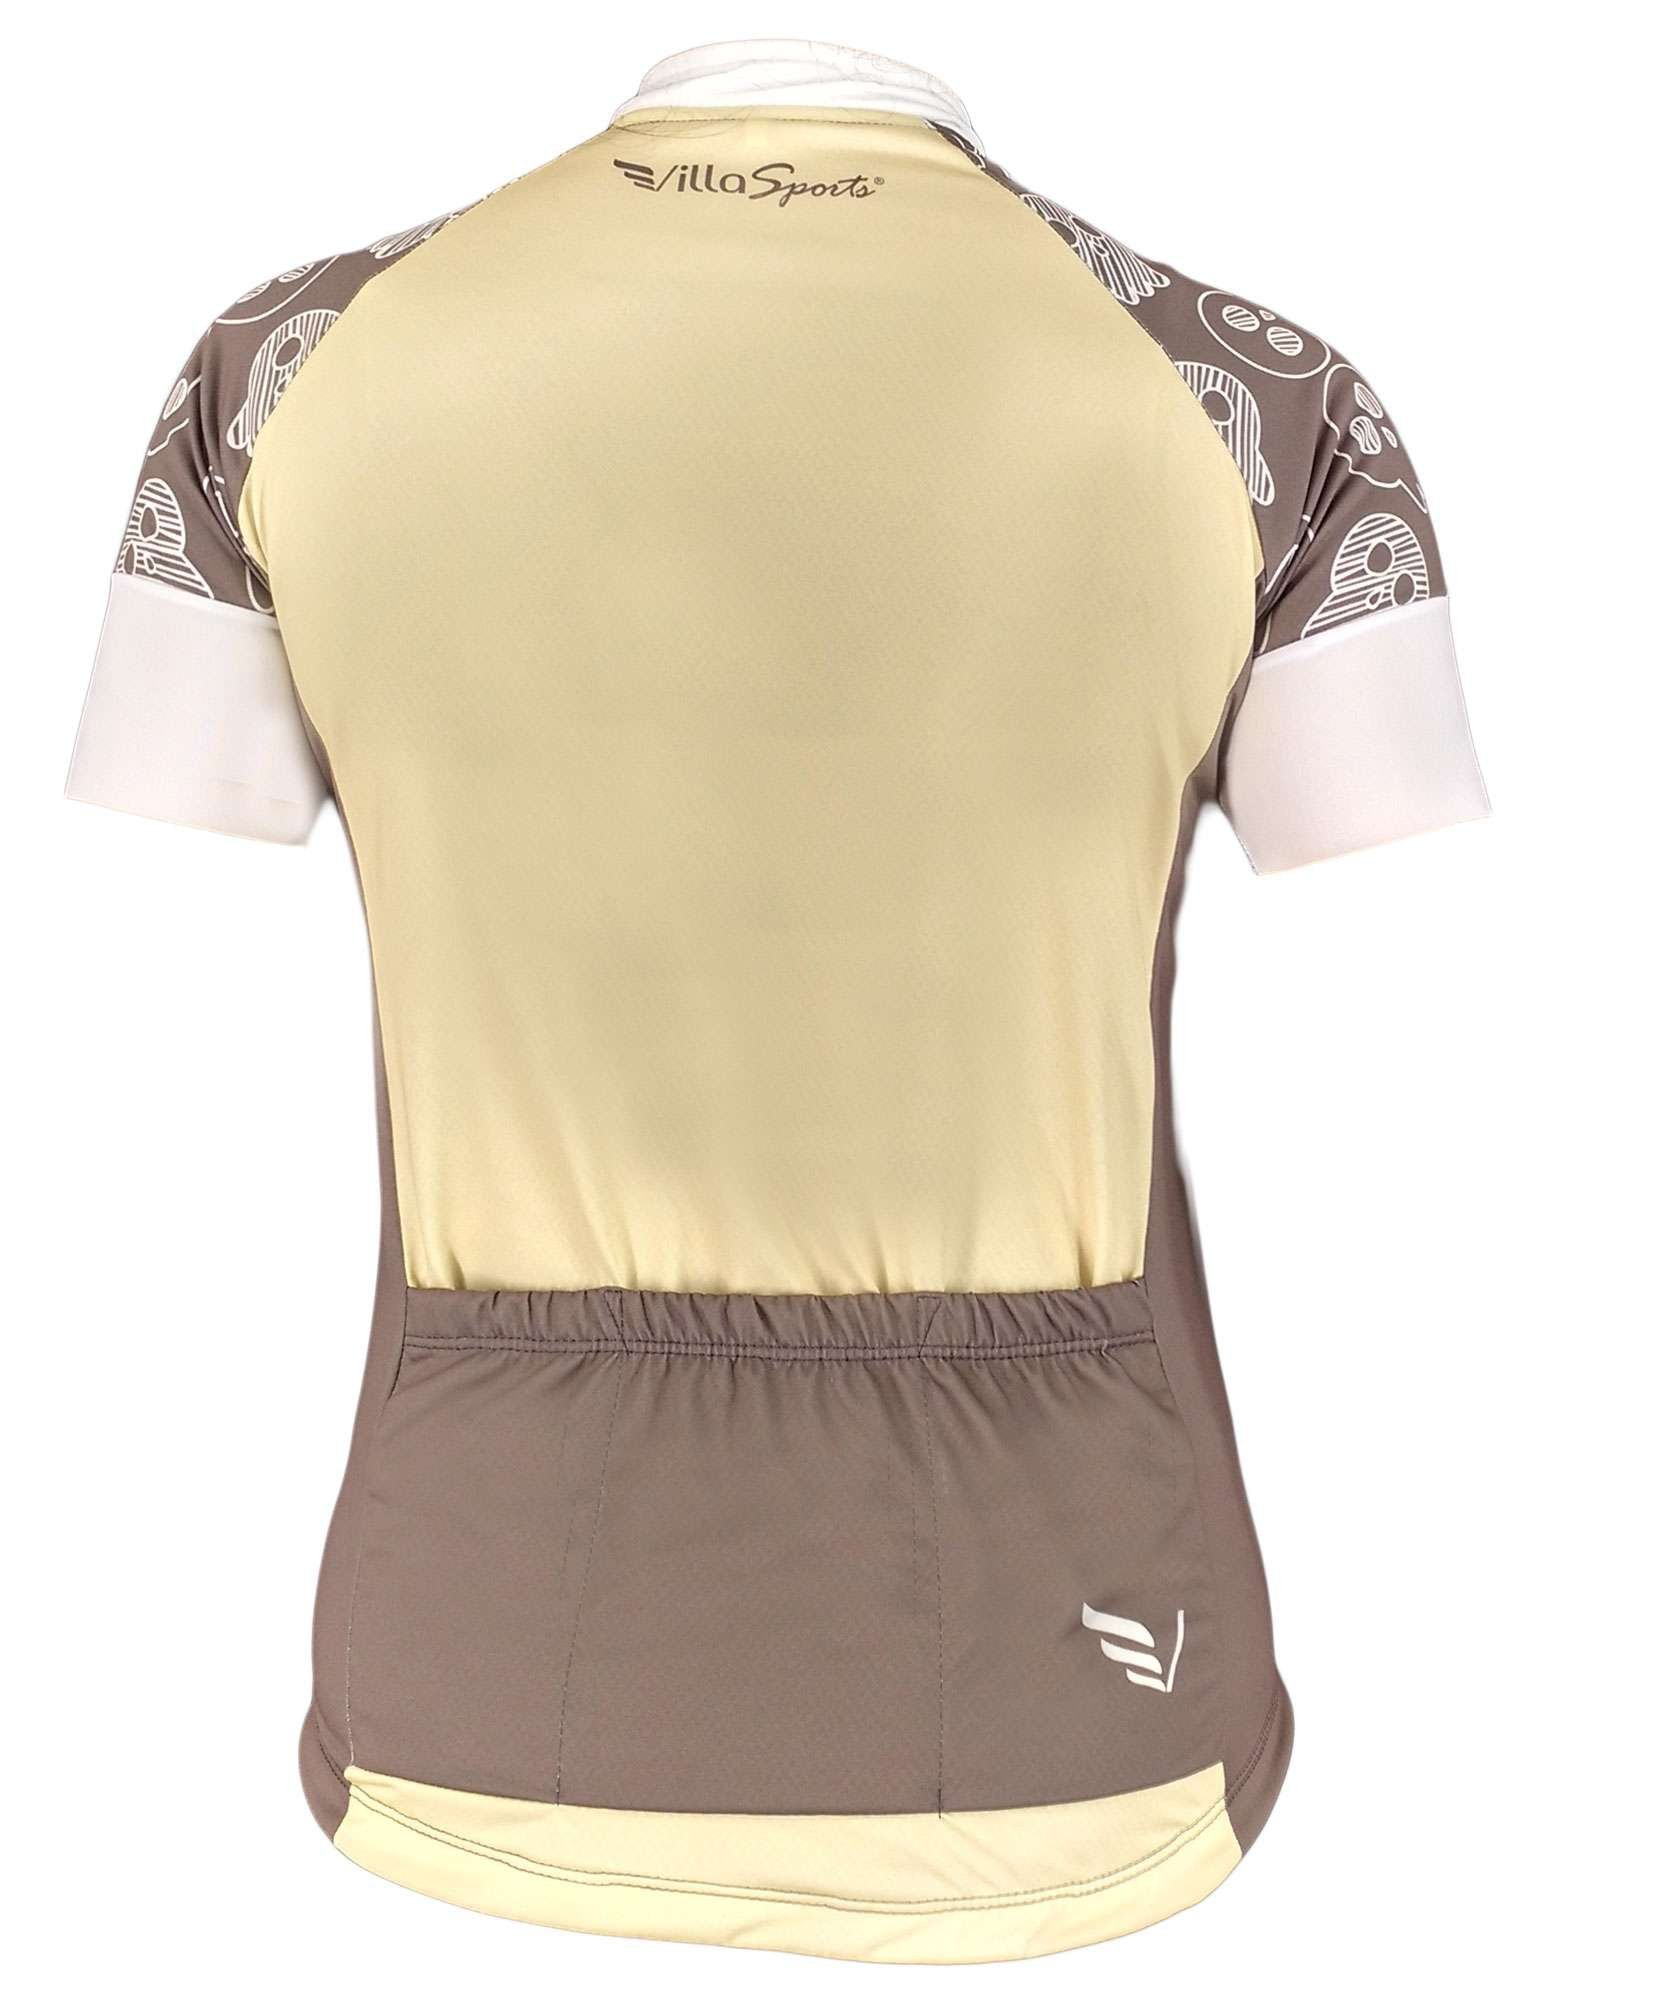 CAMISA VILLA SPORTS FEMININA BABY BIKE FUN F69 BEGE